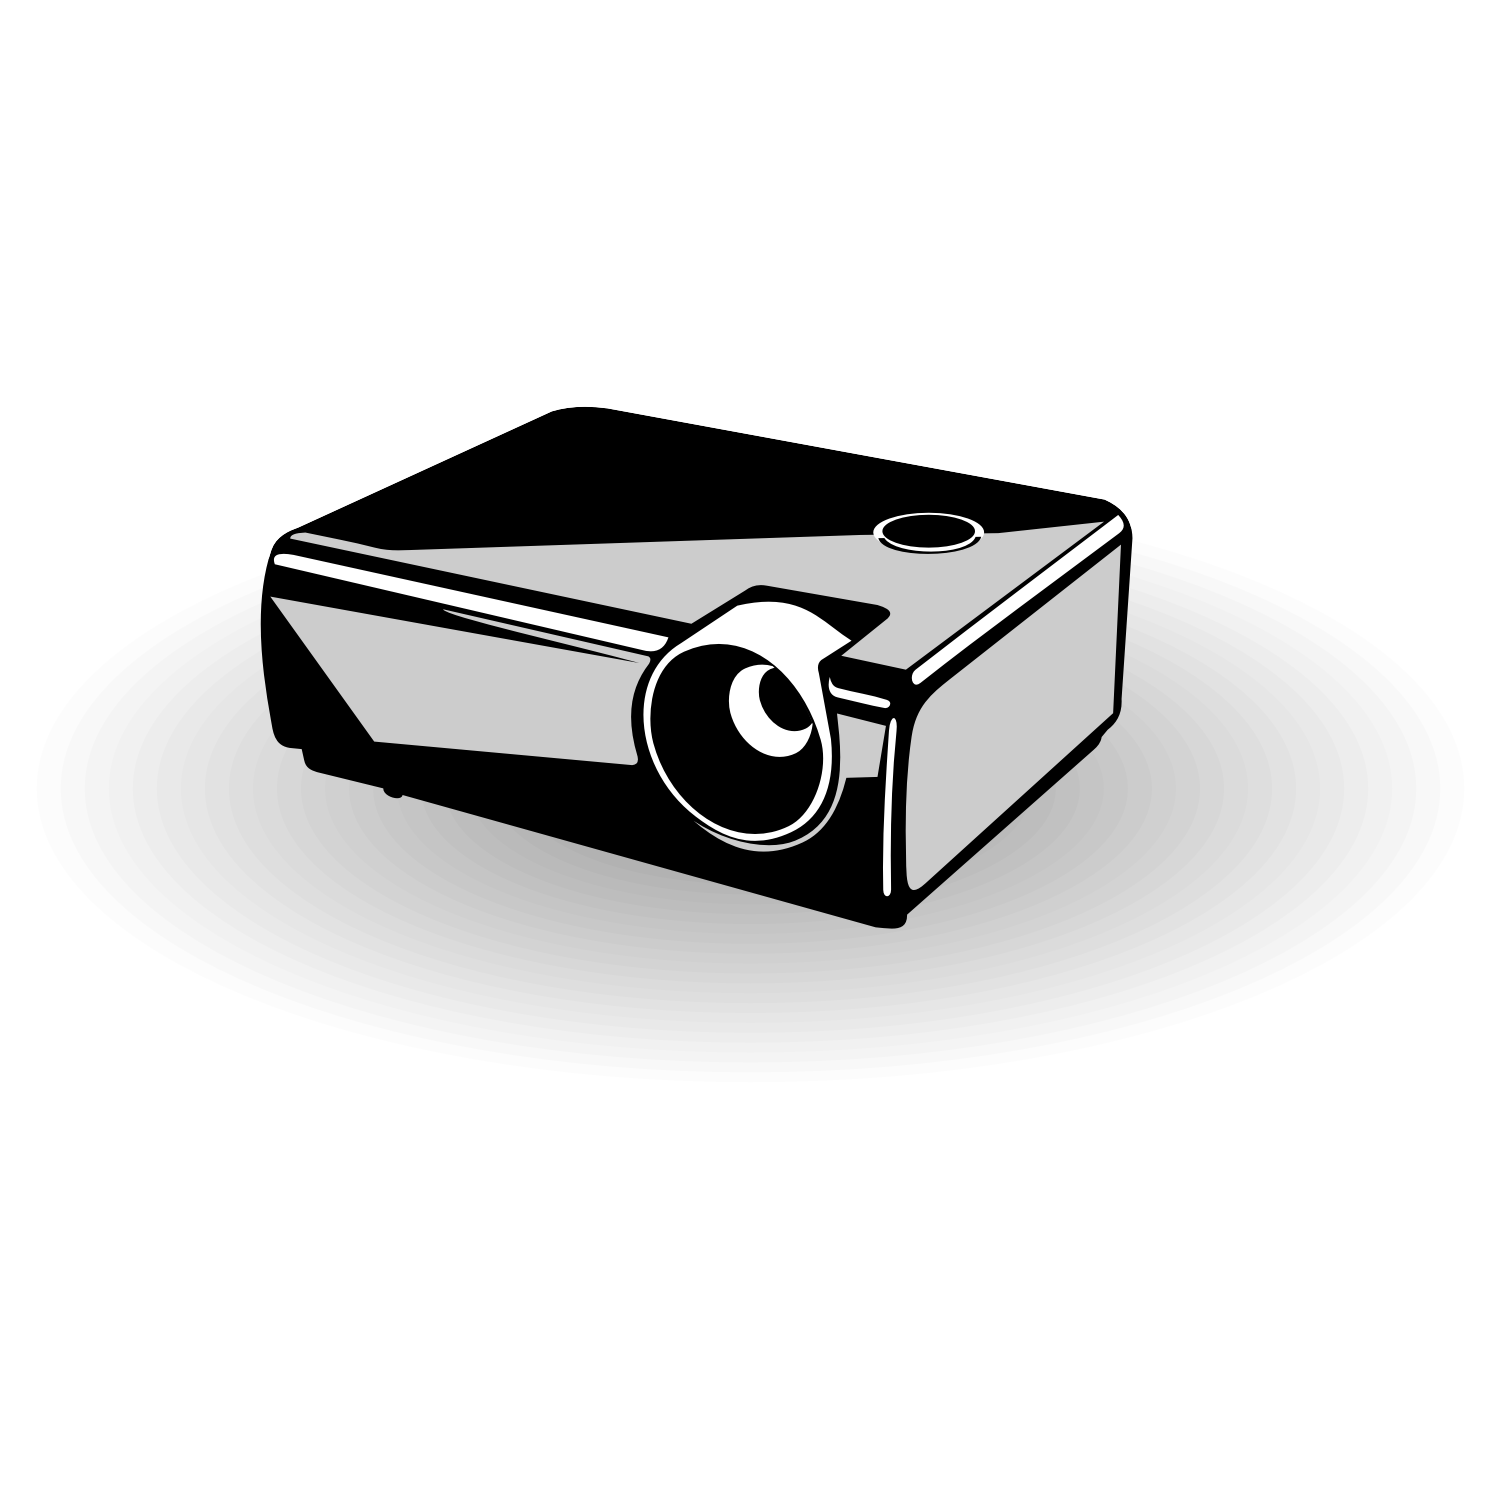 Multimedia projector. Free vector image.